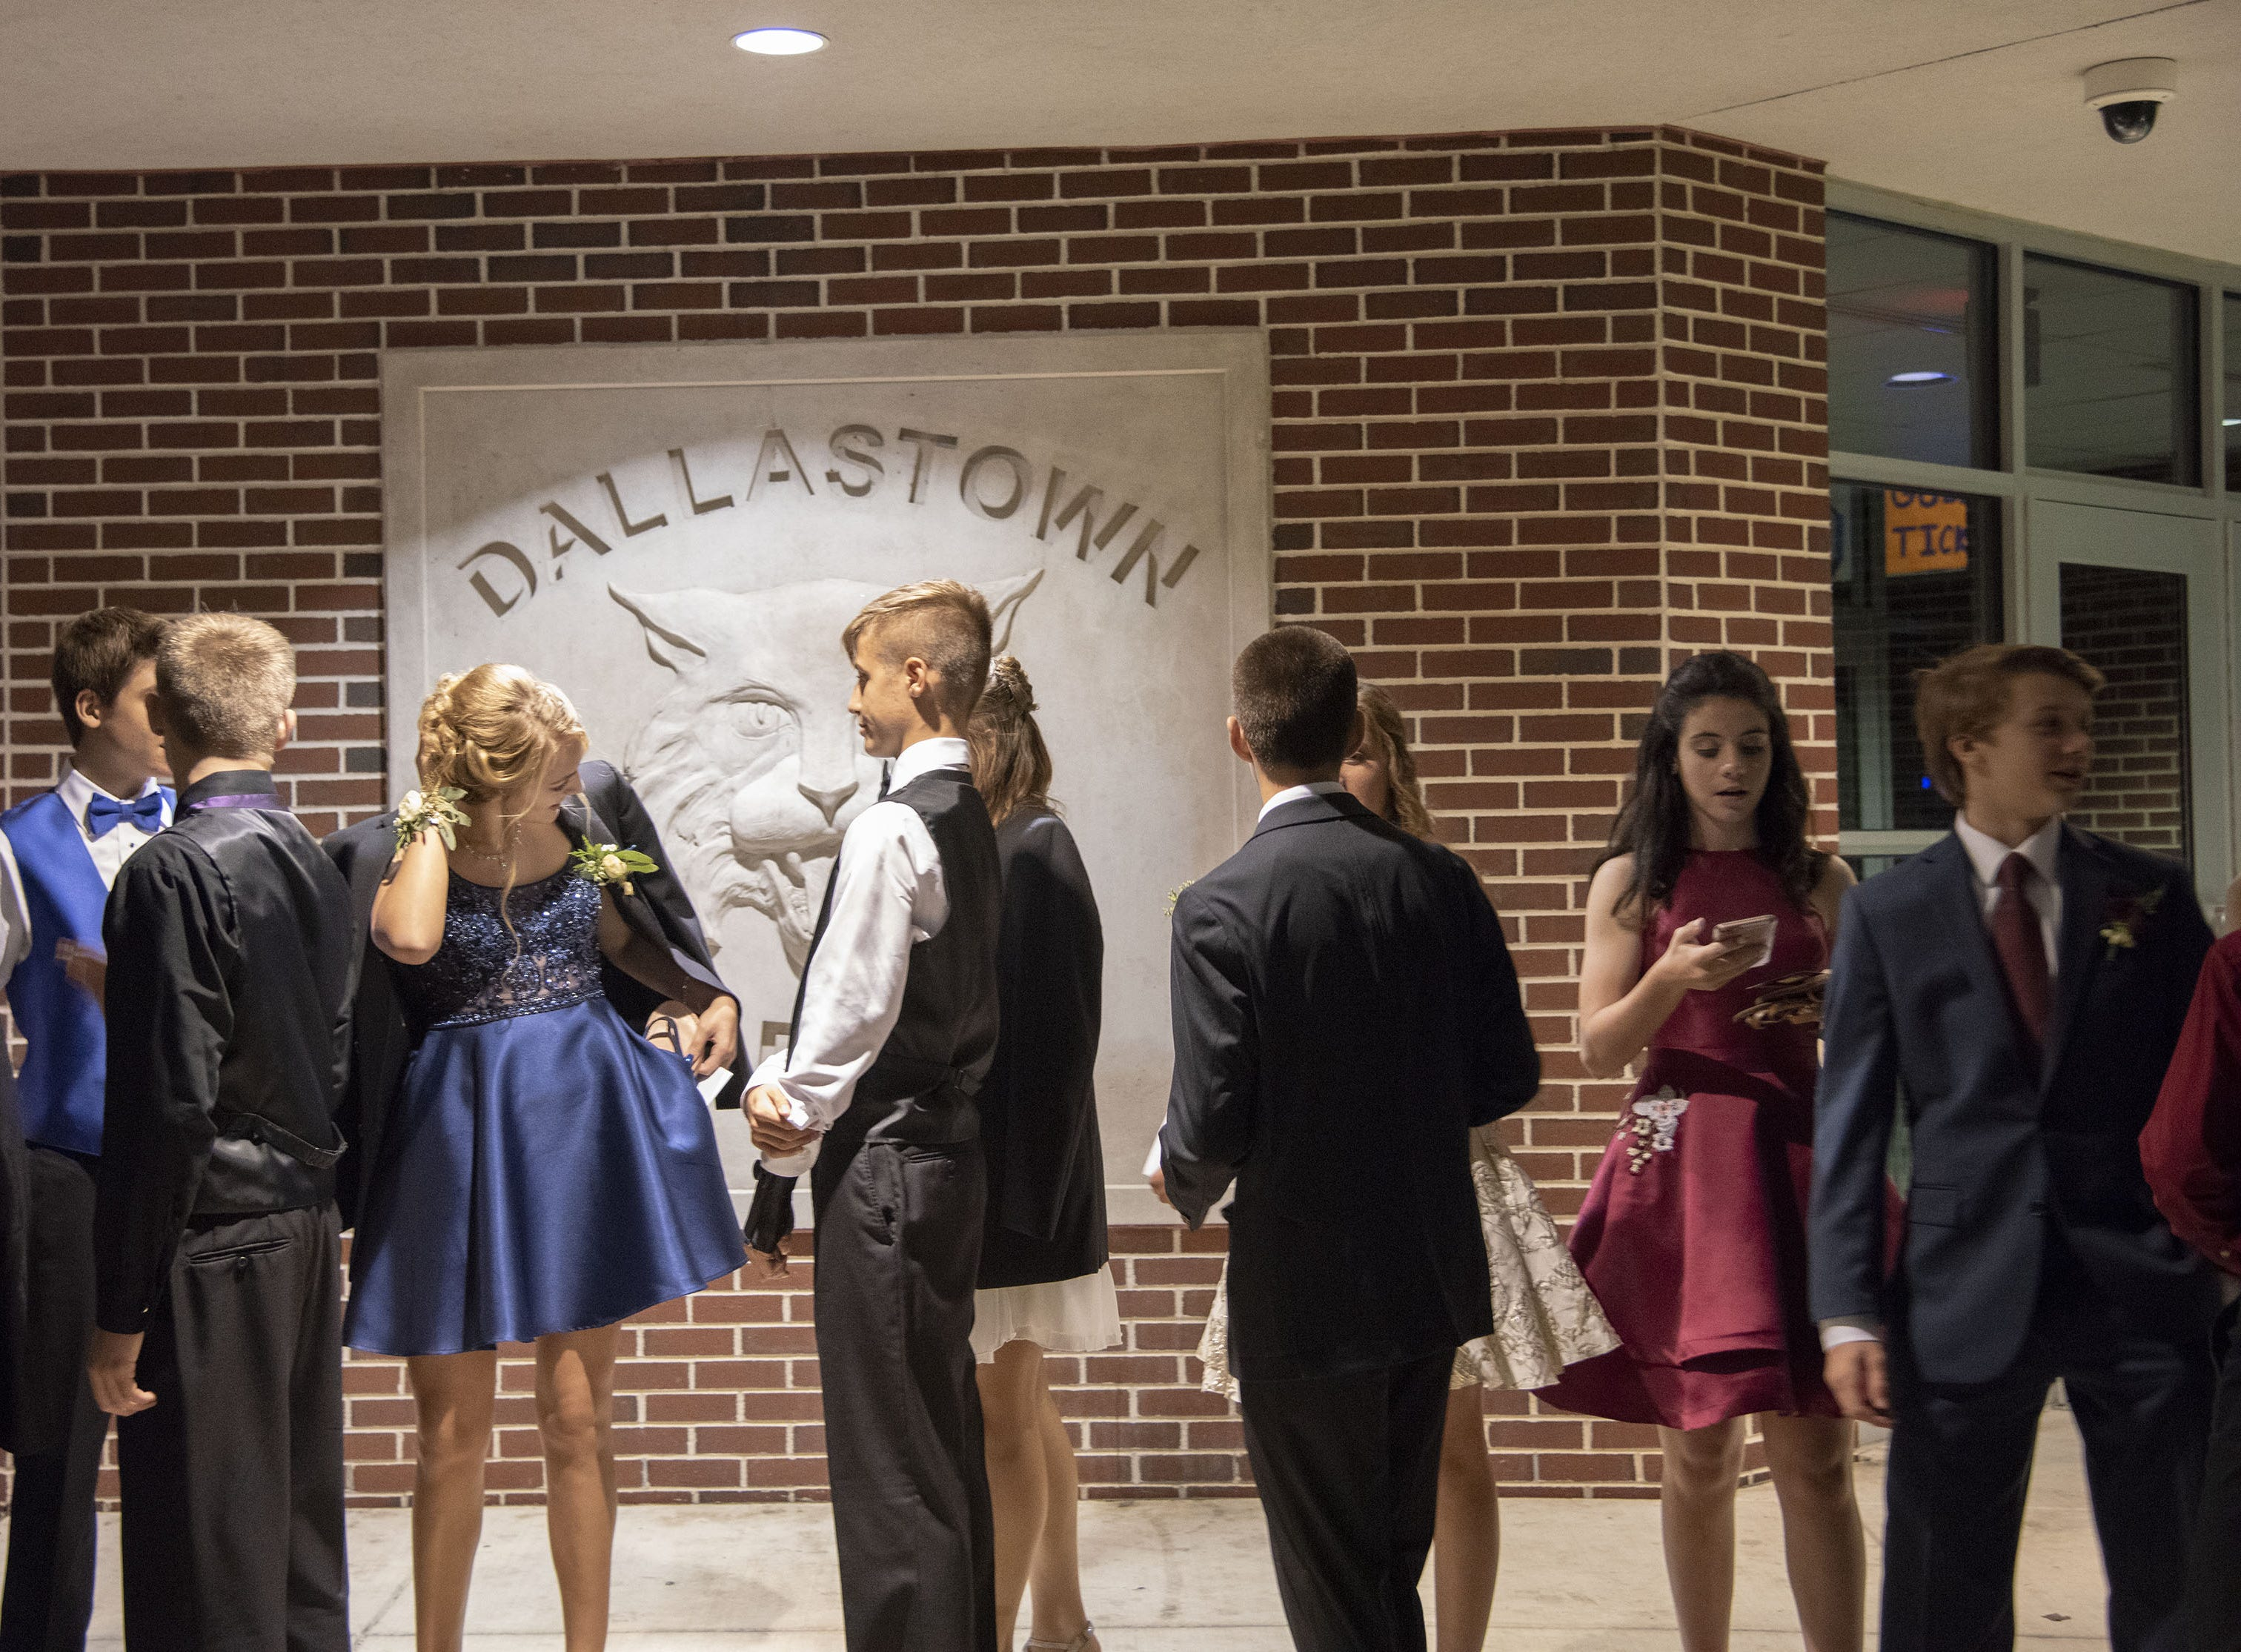 Students wait in line for The Dallastown Area High School homecoming dance that is schedule to start at 7pm on Saturday, October 6, 2018.